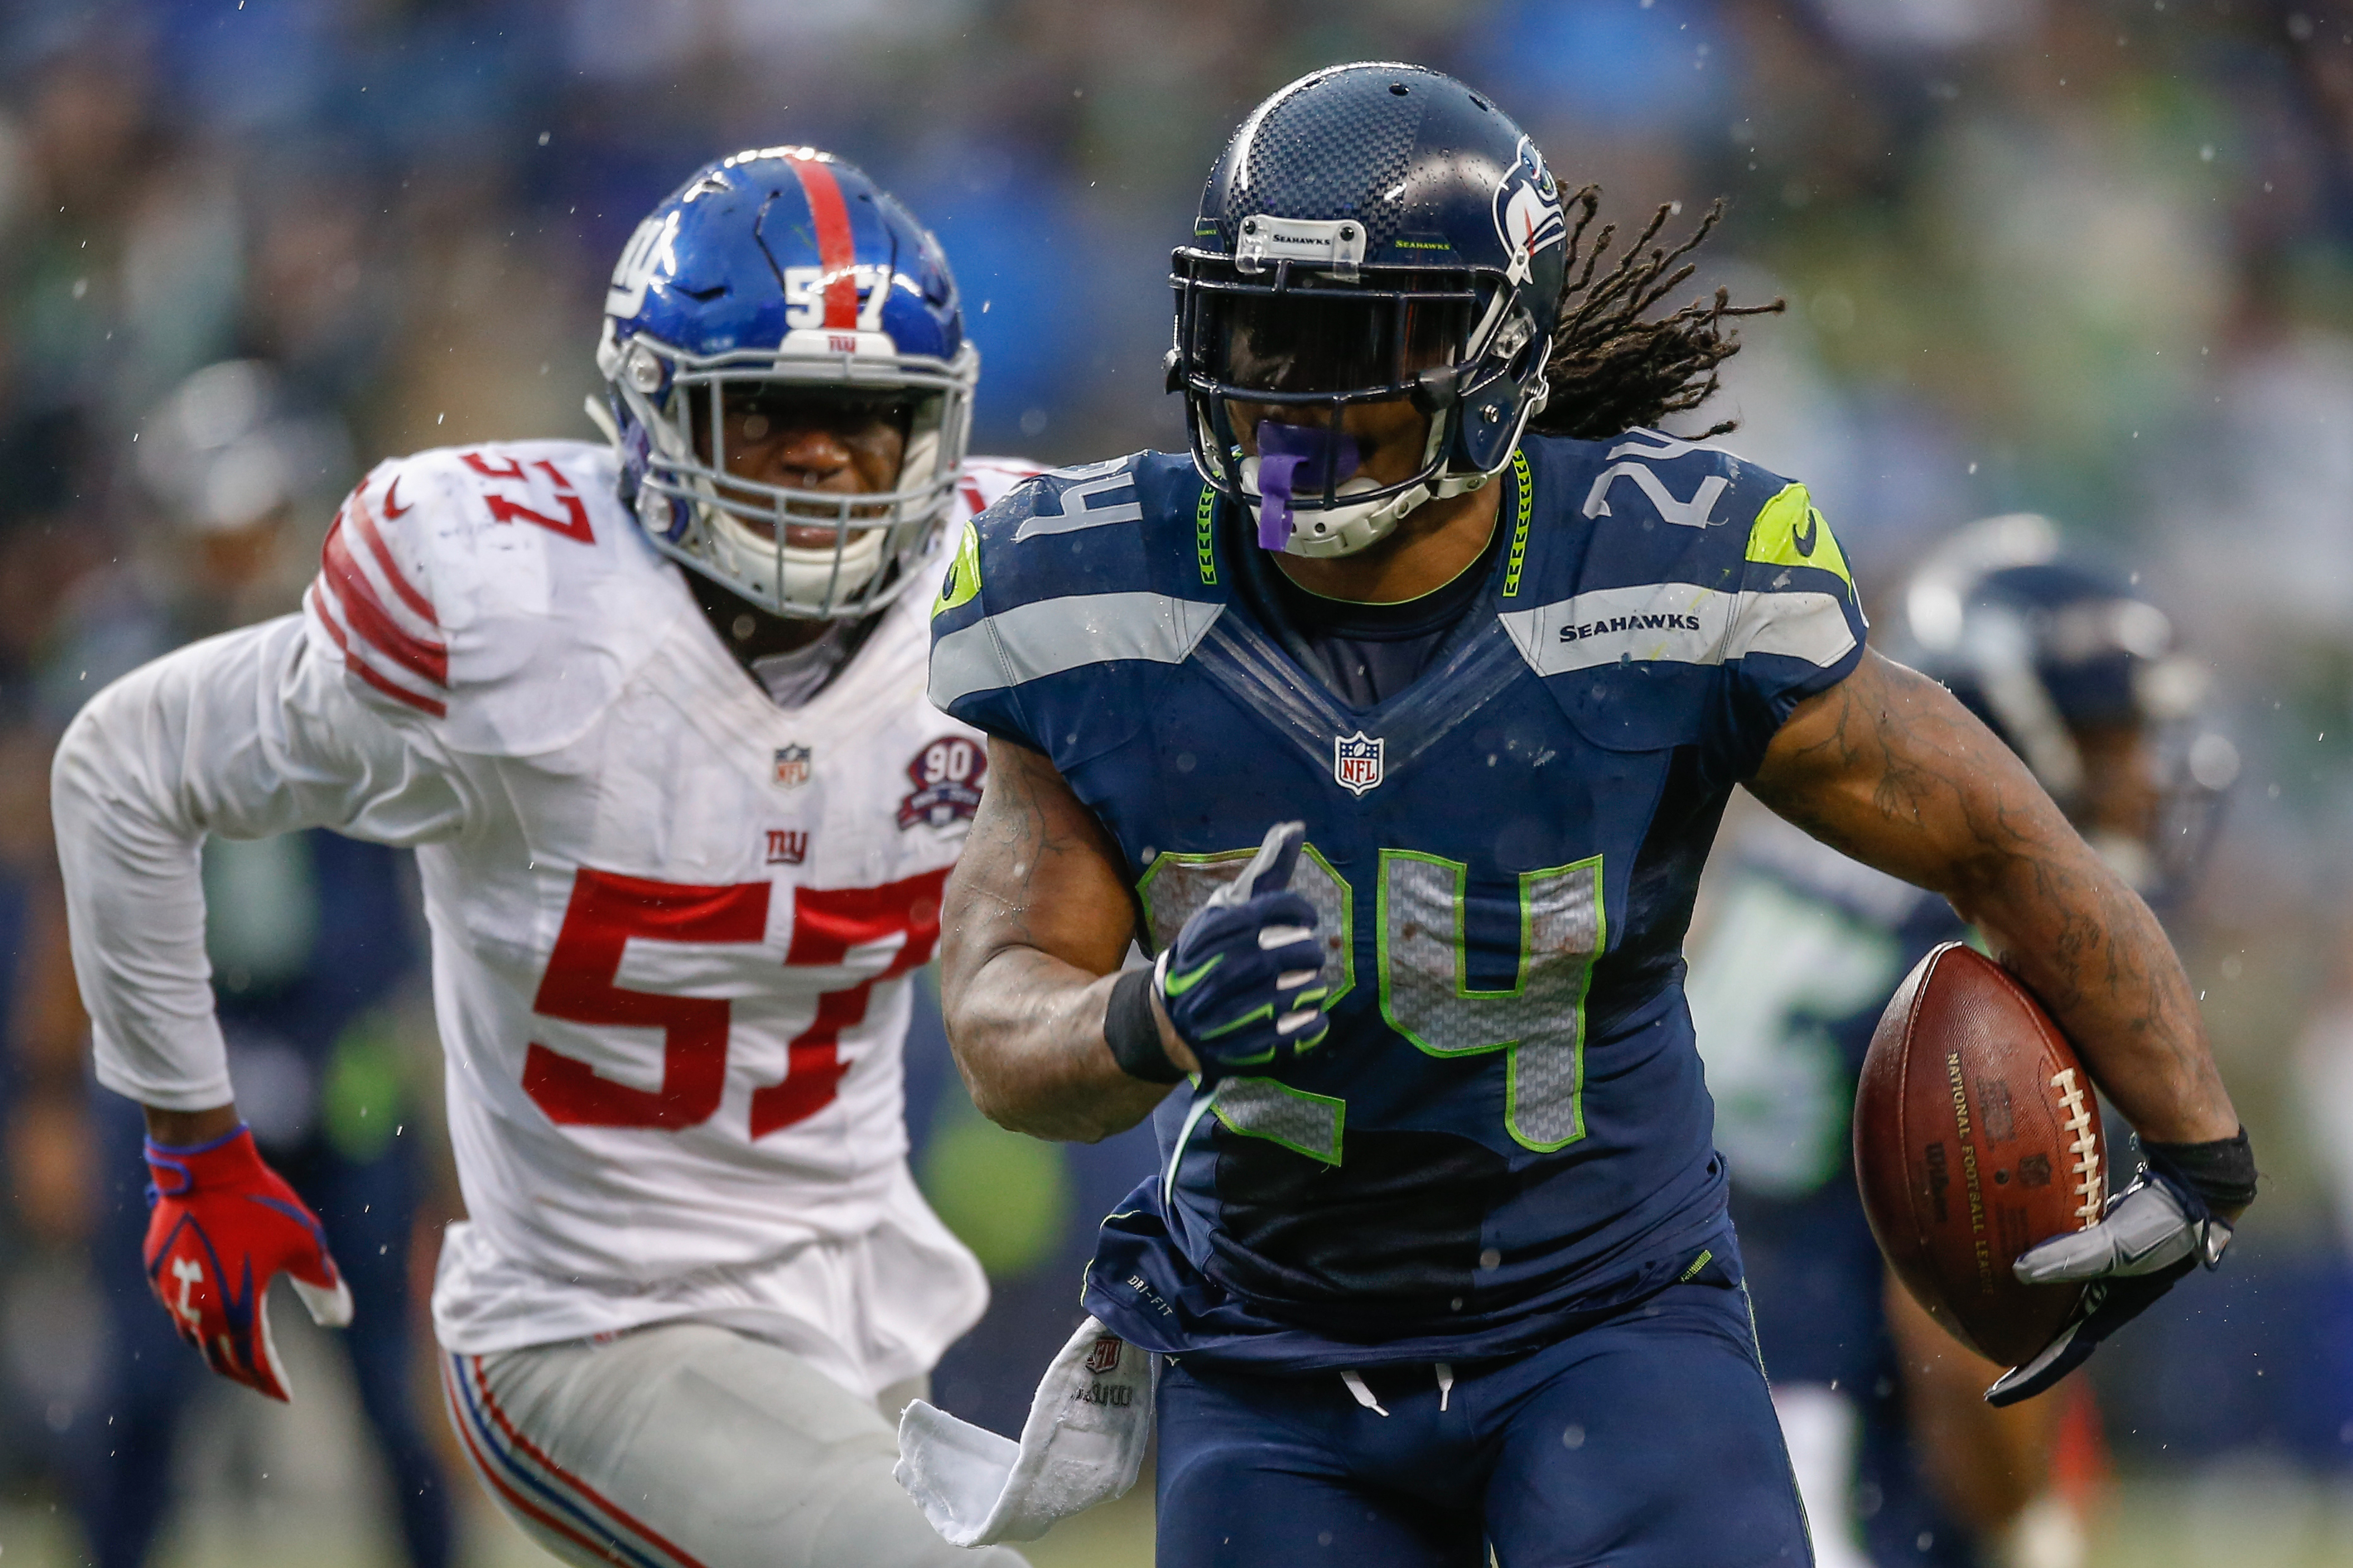 Jacquian Williams chases Marshawn Lynch